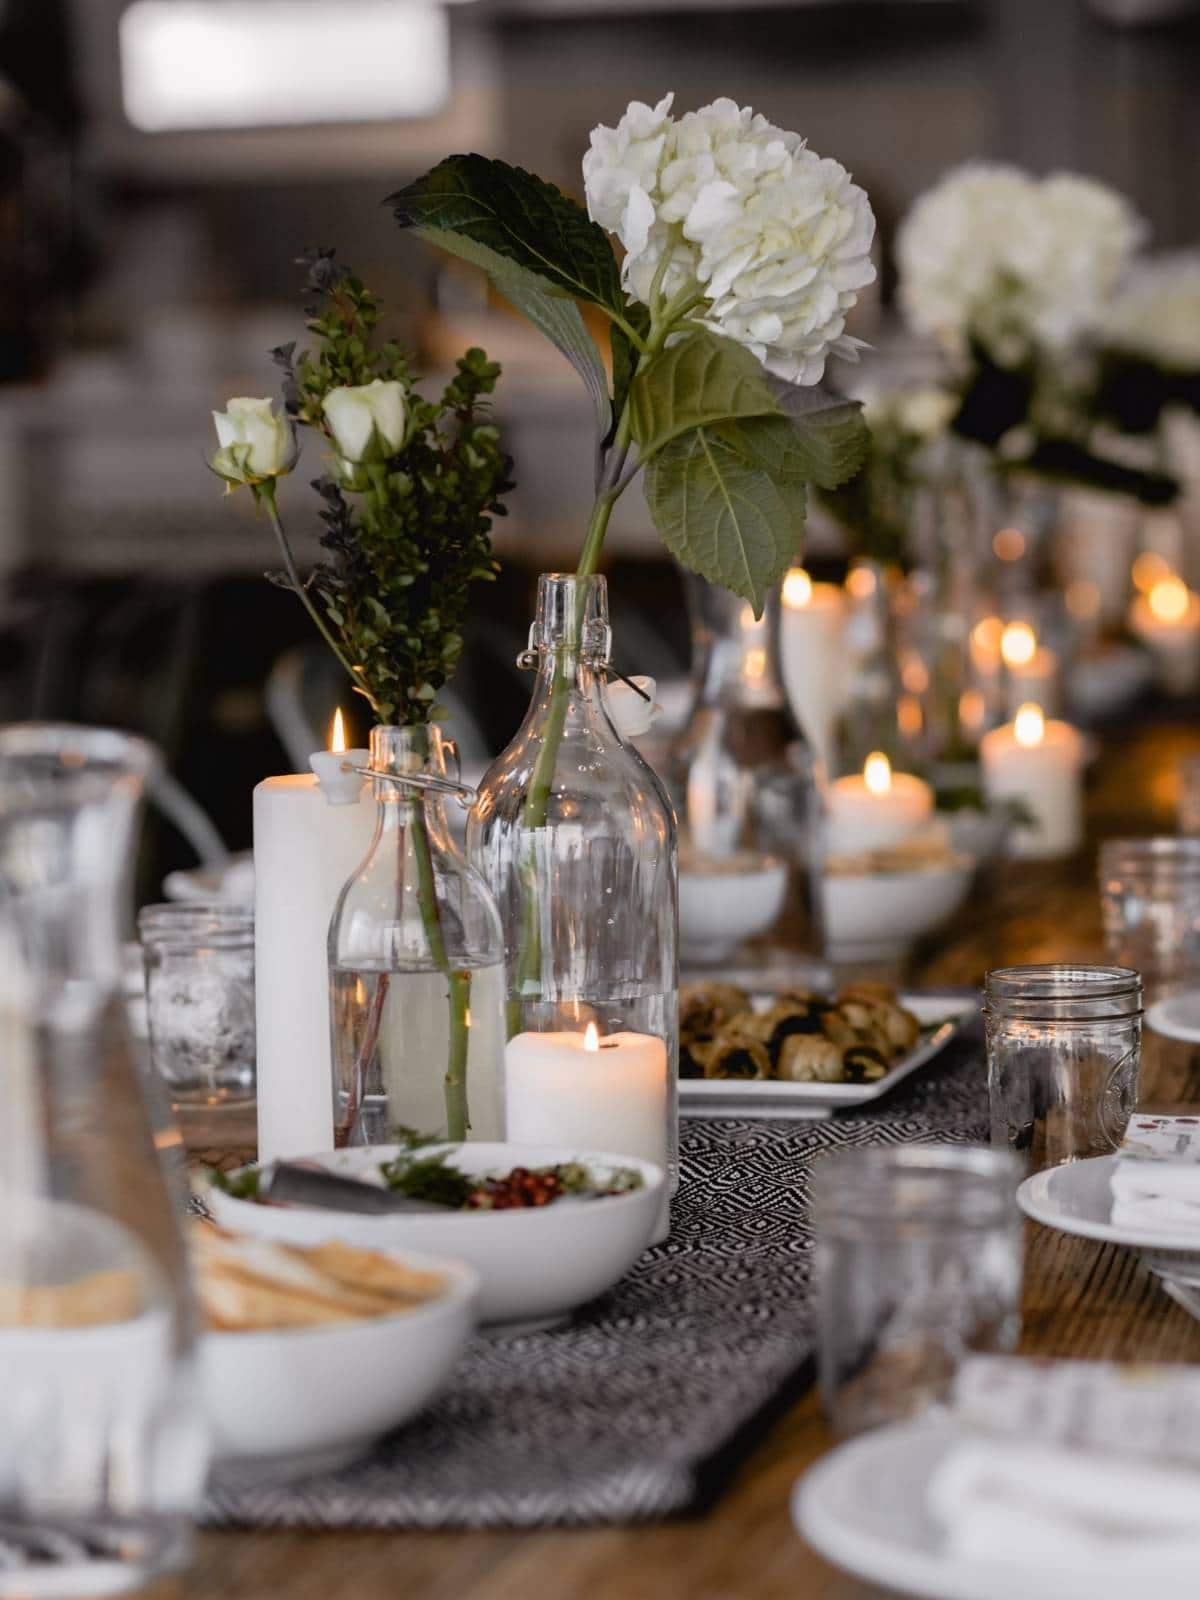 a table with white and green flowers down the middle